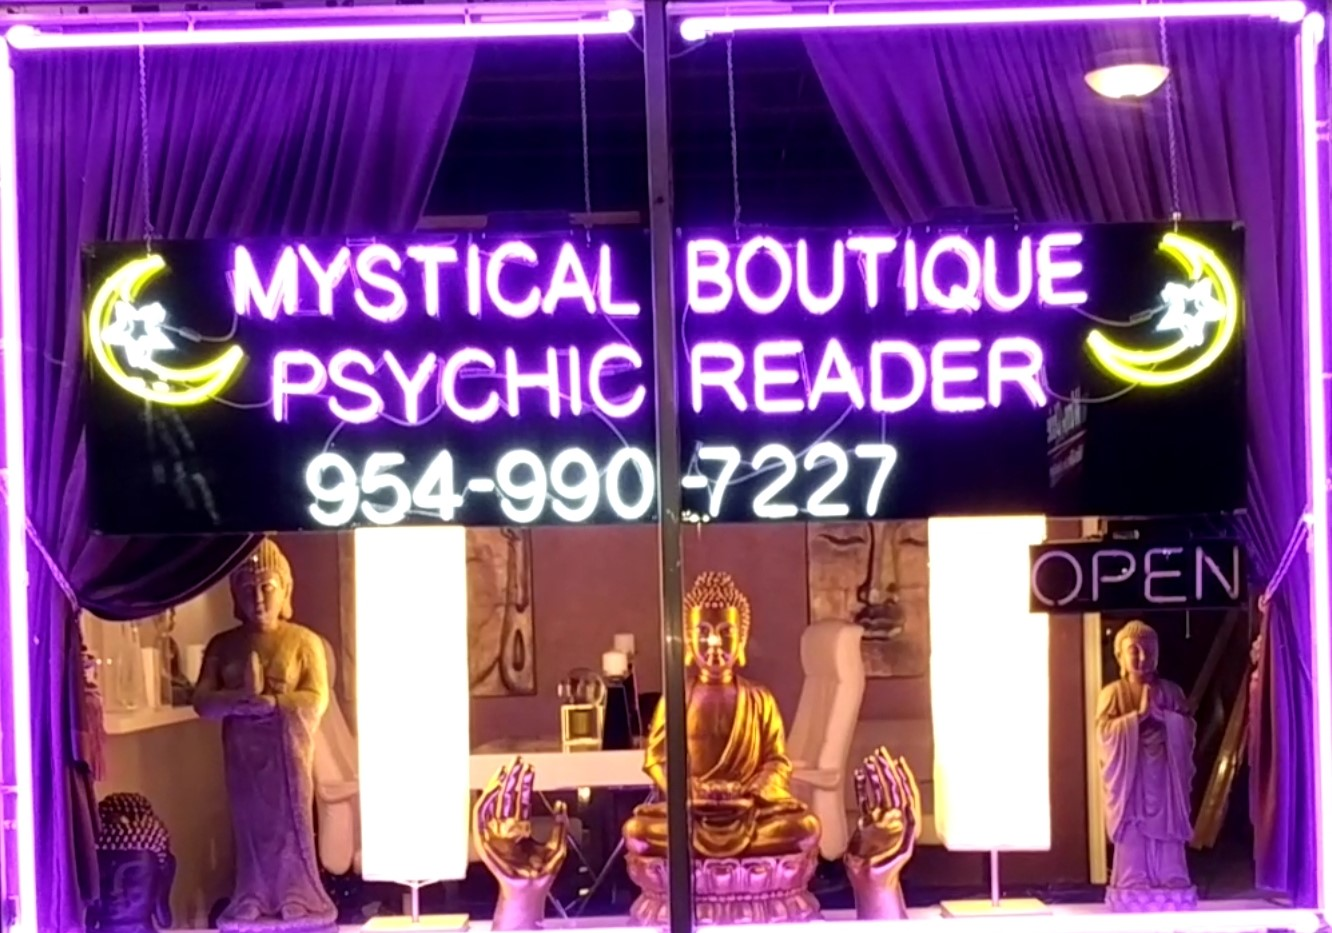 Best Psychic Near Me Fort Lauderdale FL | Best Psychic Near Me Boca